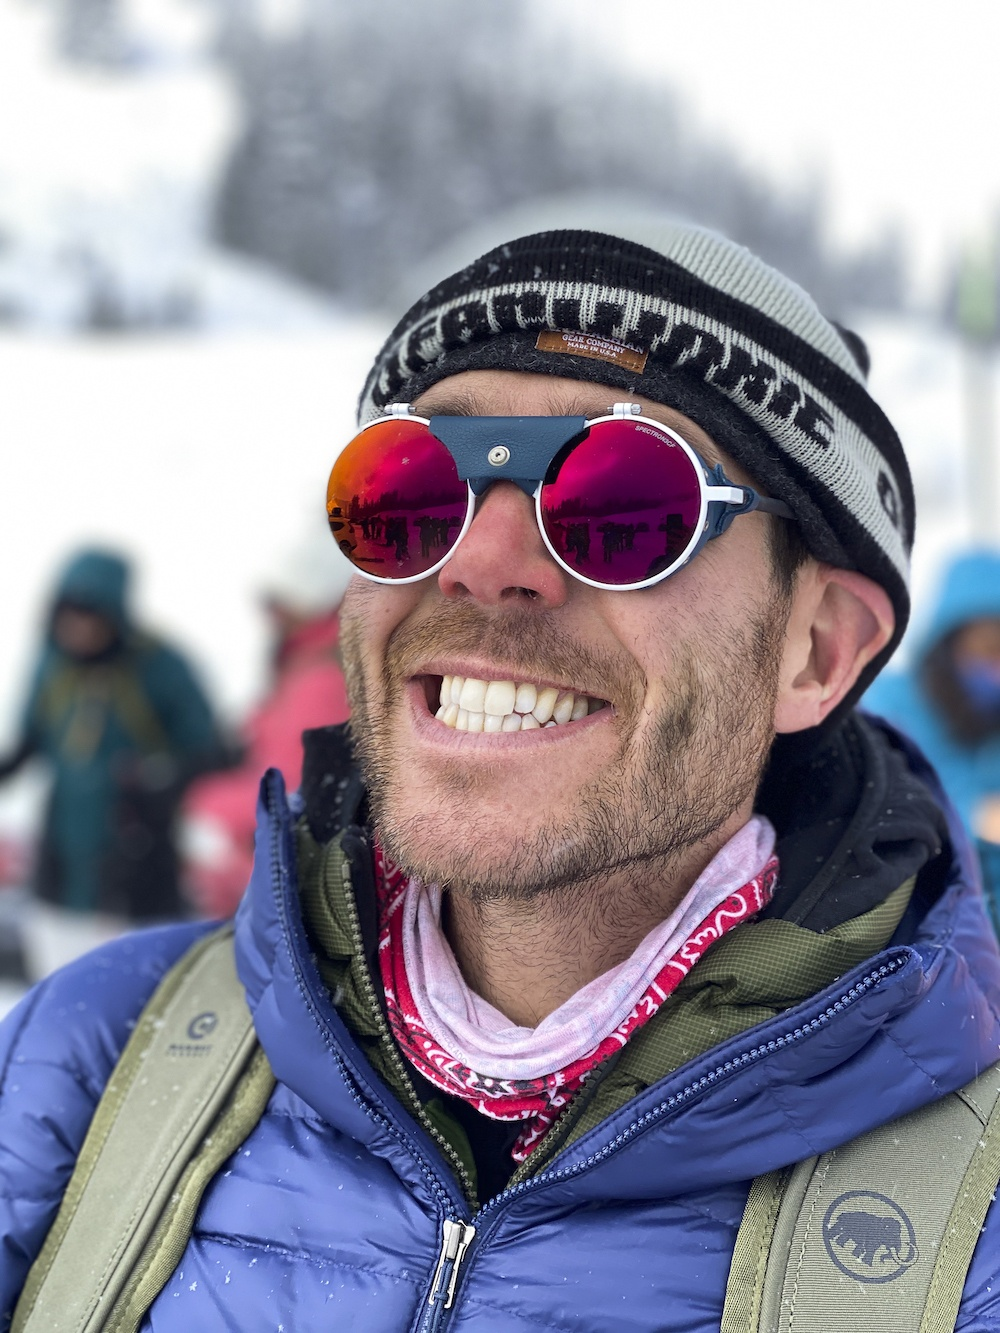 Man with scruffy beard, beanie, and glacier glasses on smiling big with snow in background.